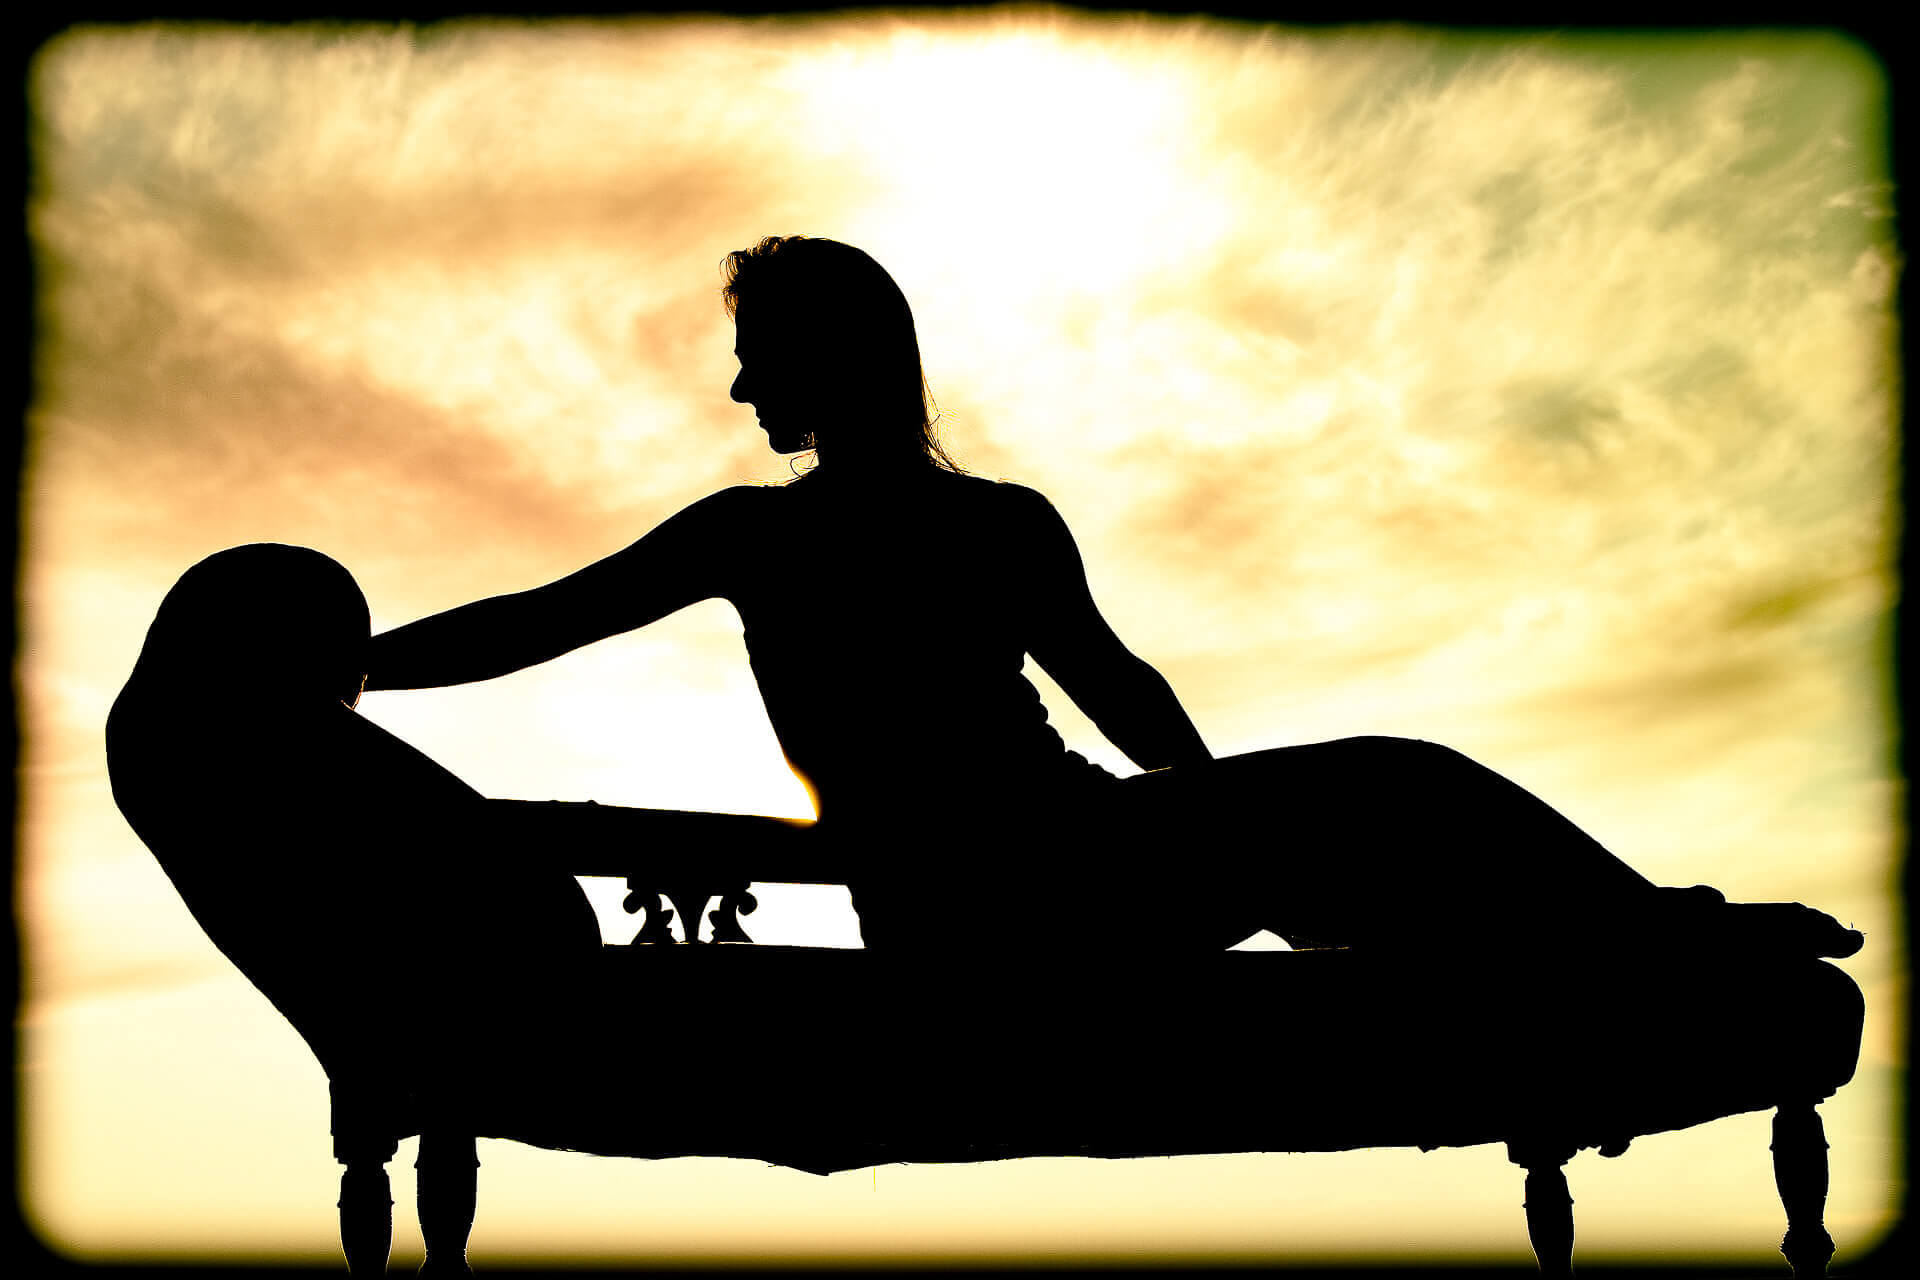 A silhouetted Liz poses in a classic pose on a Chaise Longue. Taken in France 2011.